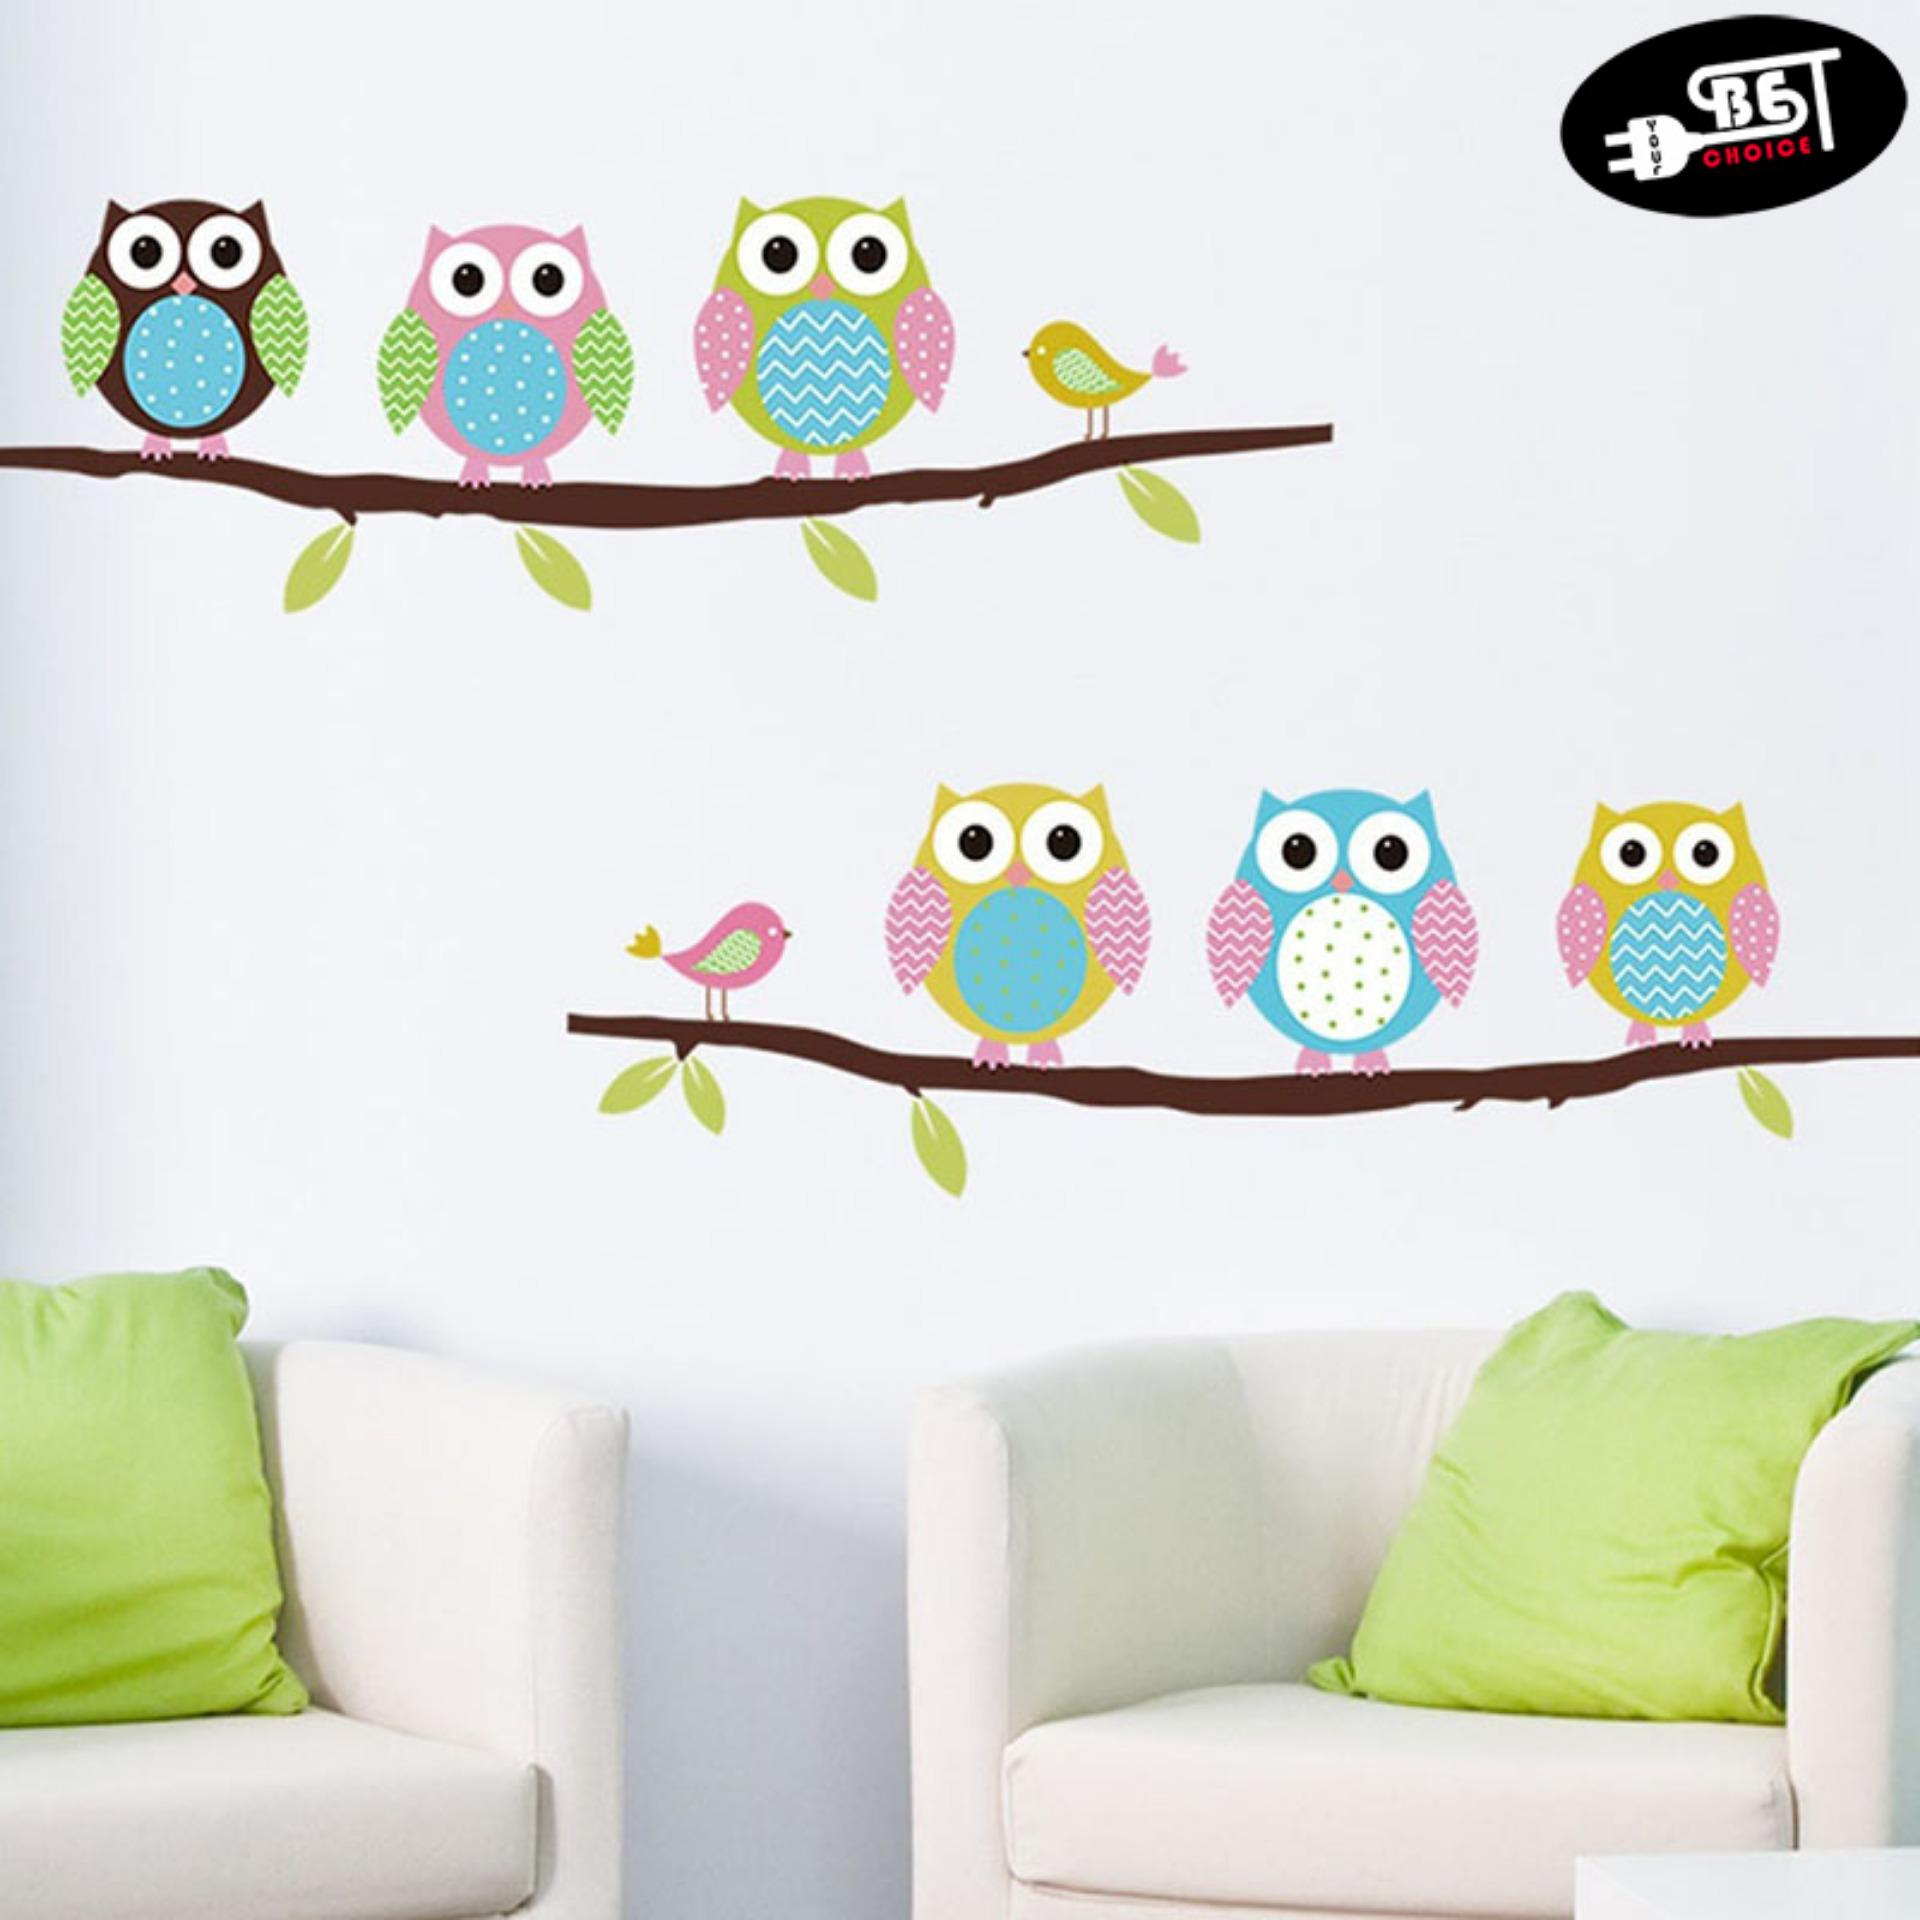 Wall Stickers For Sale Decals Prices Brands Review In Circuit Board Tree Vinyl Art Graphic Ybc Cartoon Cute Six Owl On The Decor Mural Kid Room Decal